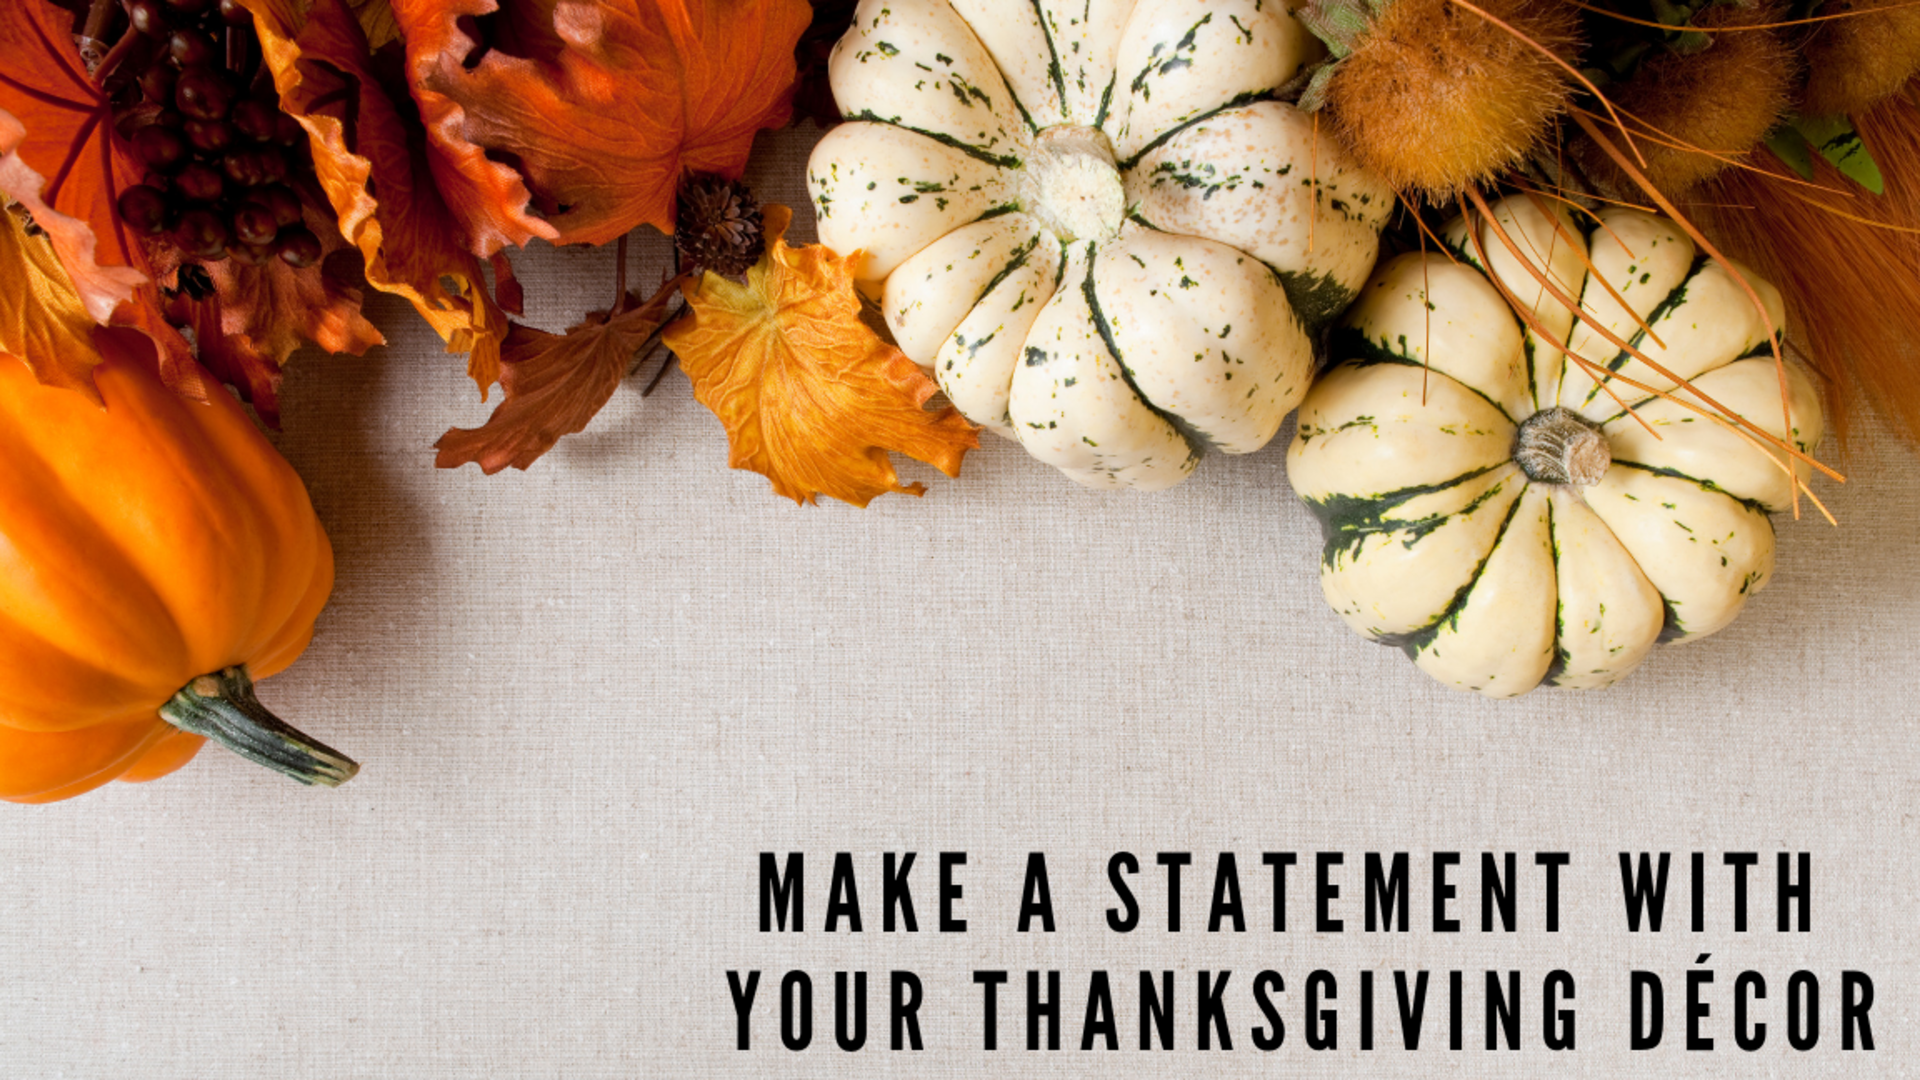 Make A Statement with Your Thanksgiving Décor